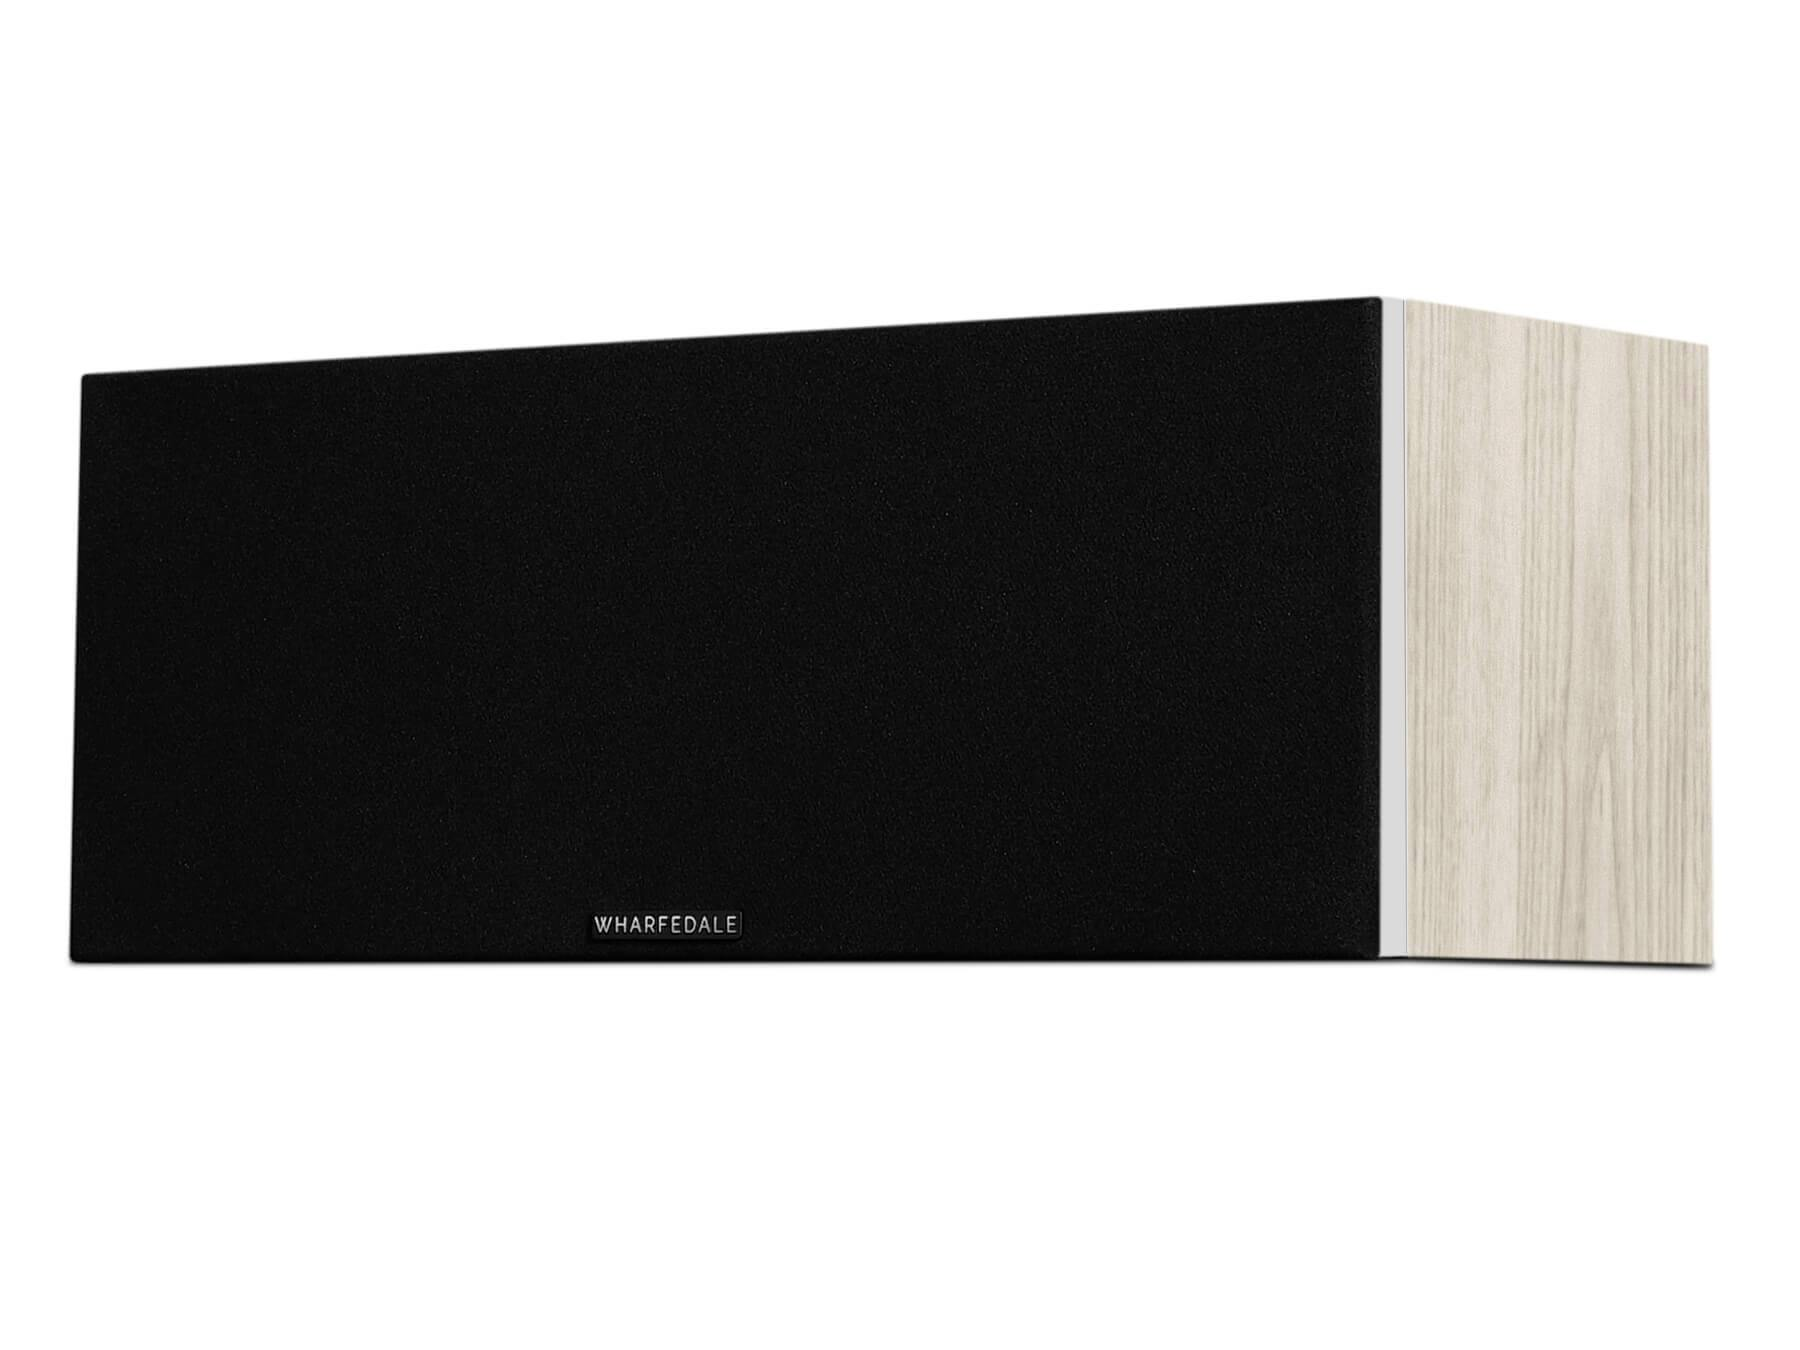 Wharfedale Diamond 12 C - Light Oak - Speaker Grille